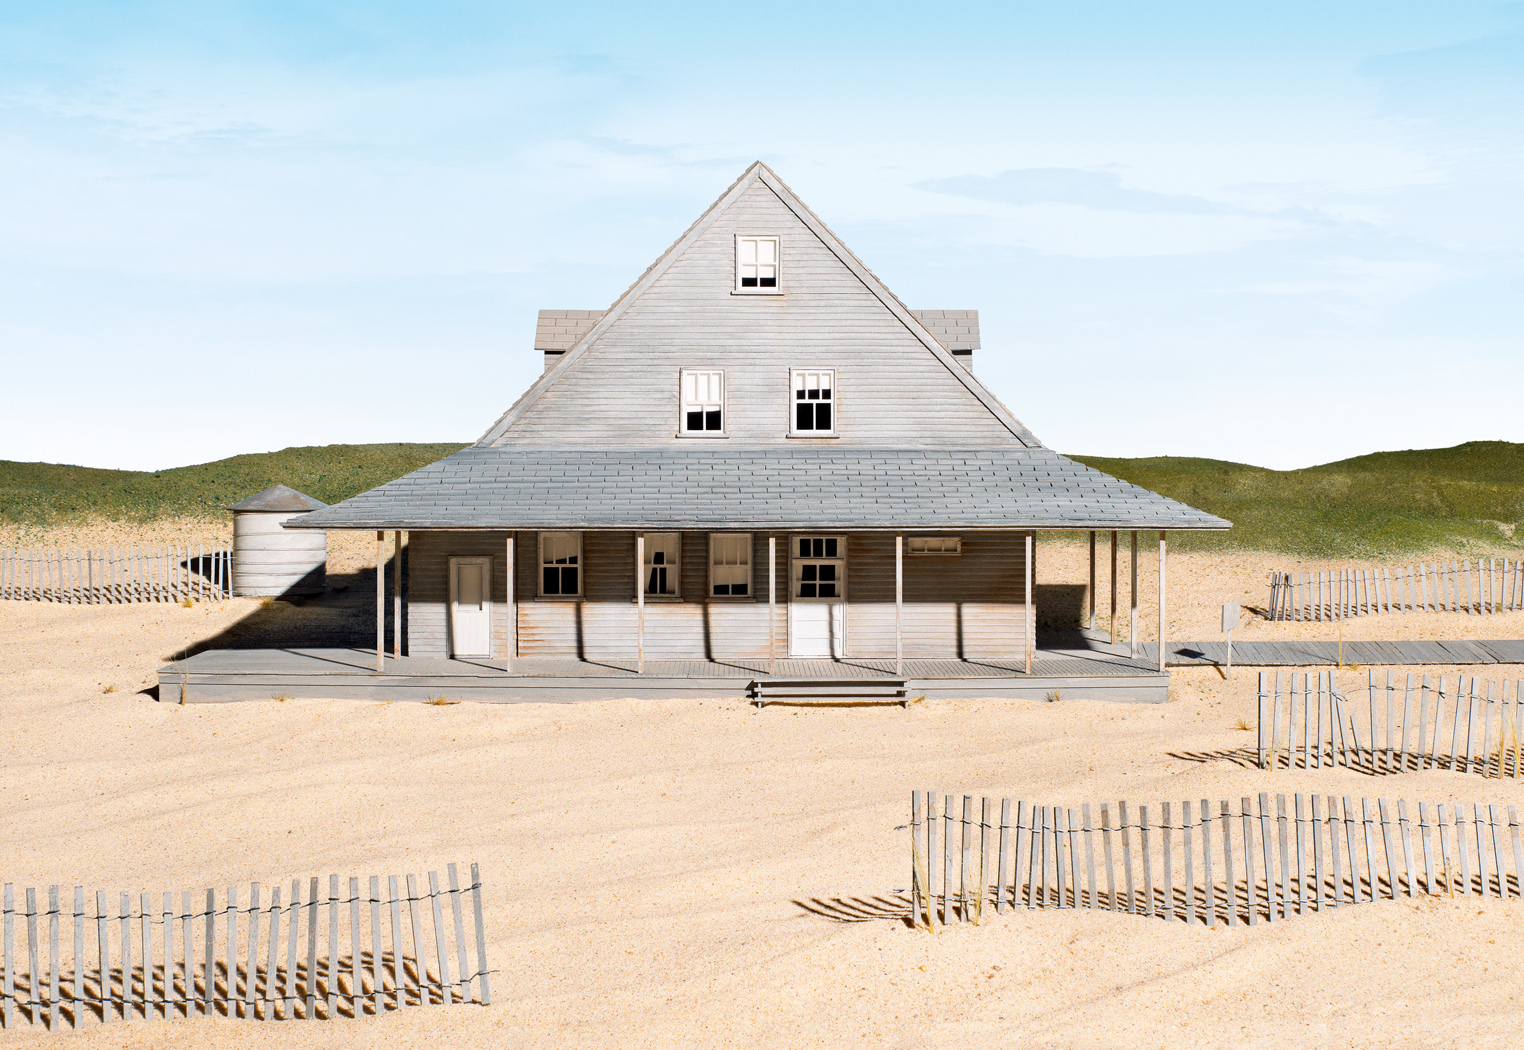 Caffey's Inlet Lifesaving Station (Dare County, NC) , 2013